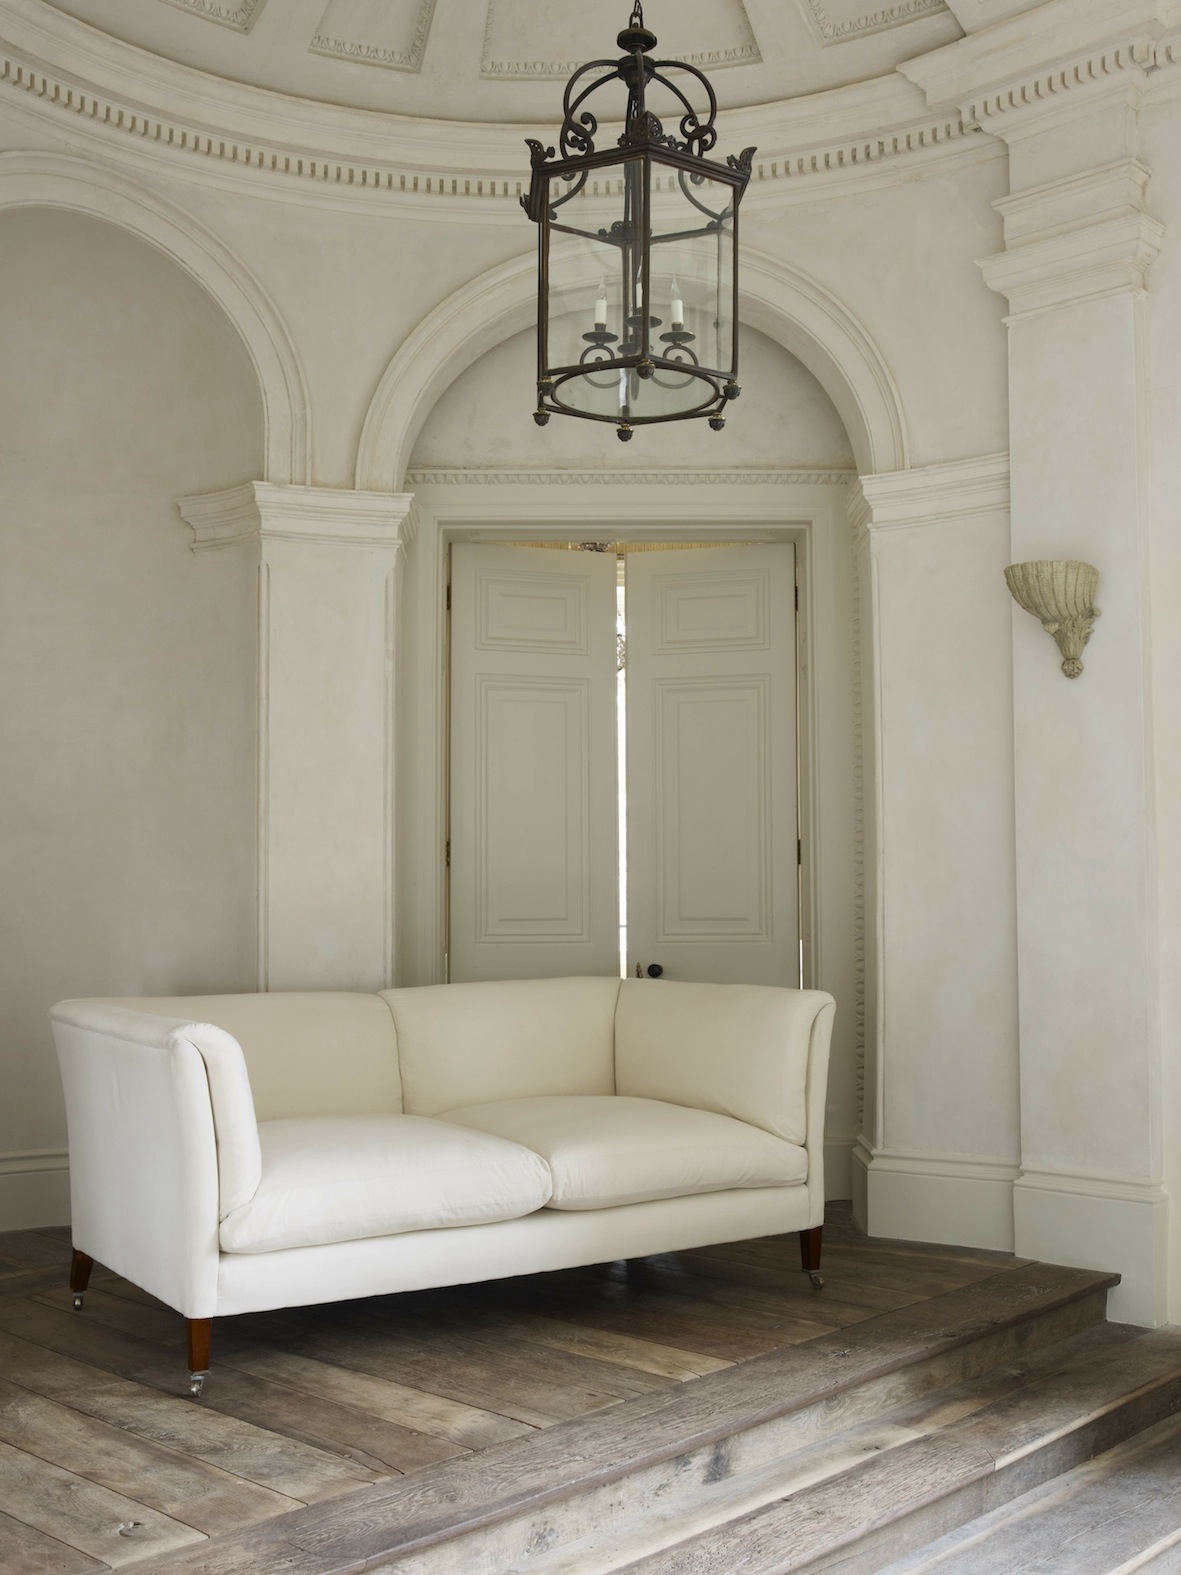 Designer Rose Uniacke makes a suite of perfect sofas. Shown here is the Classic Sofa with a design &#8